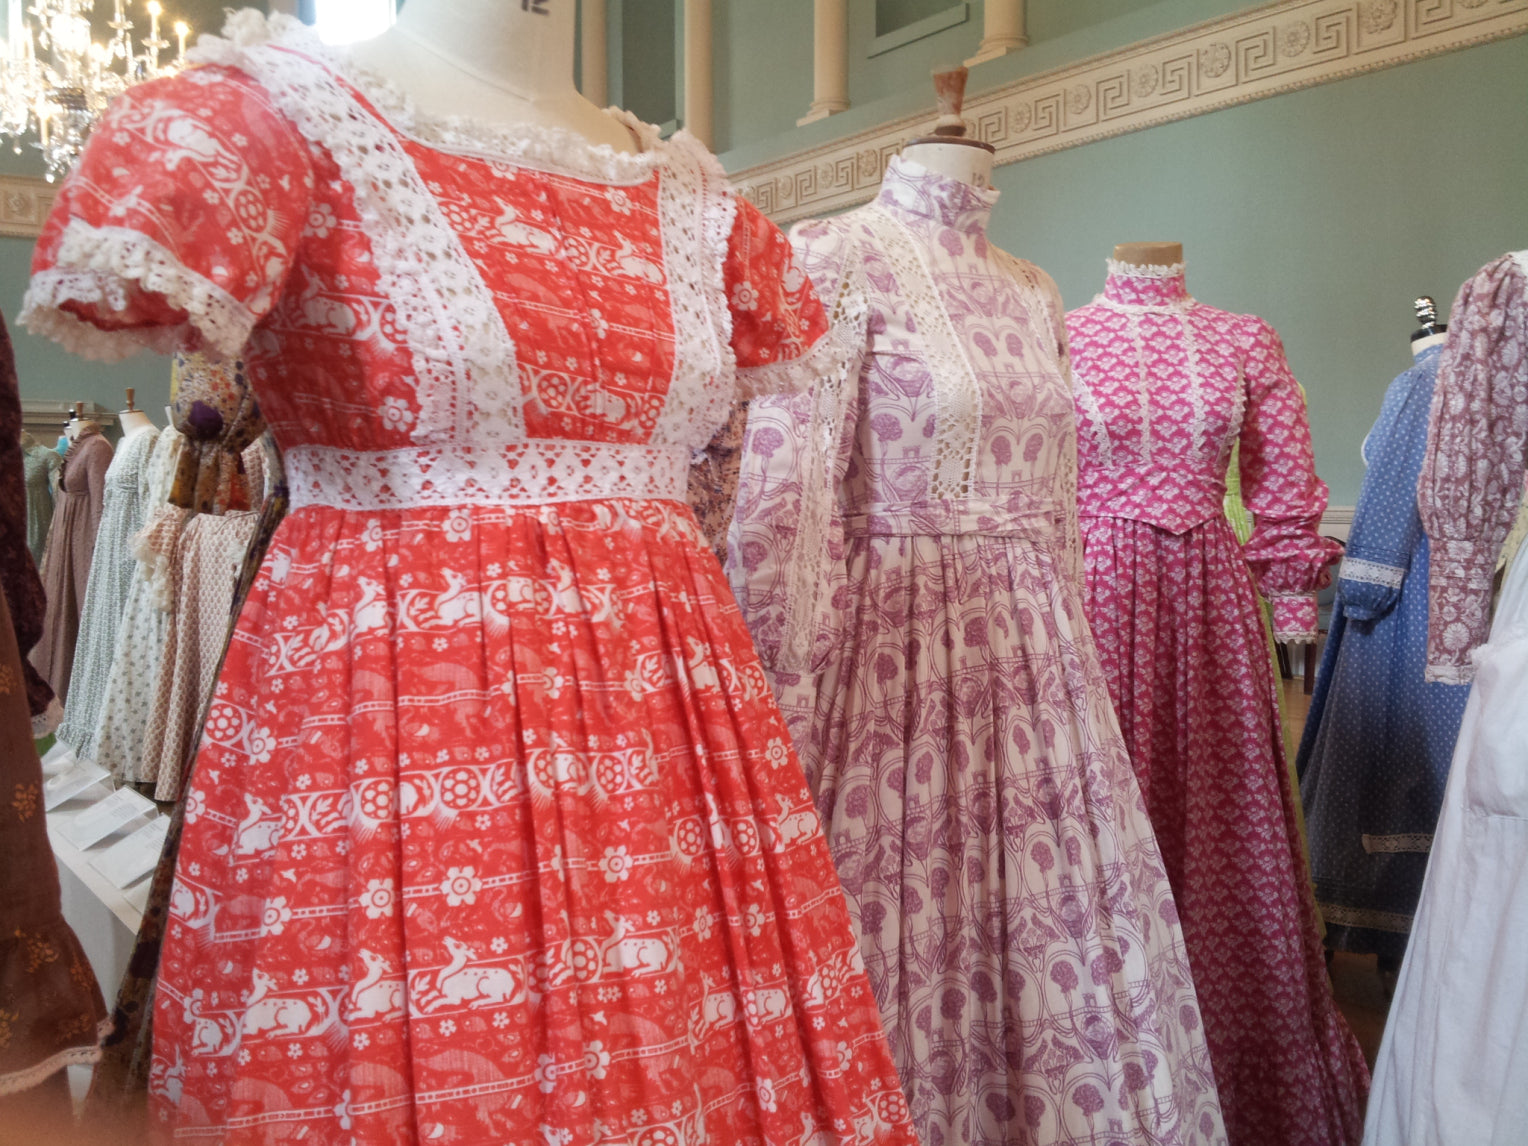 Laura Ashley dresses in museum